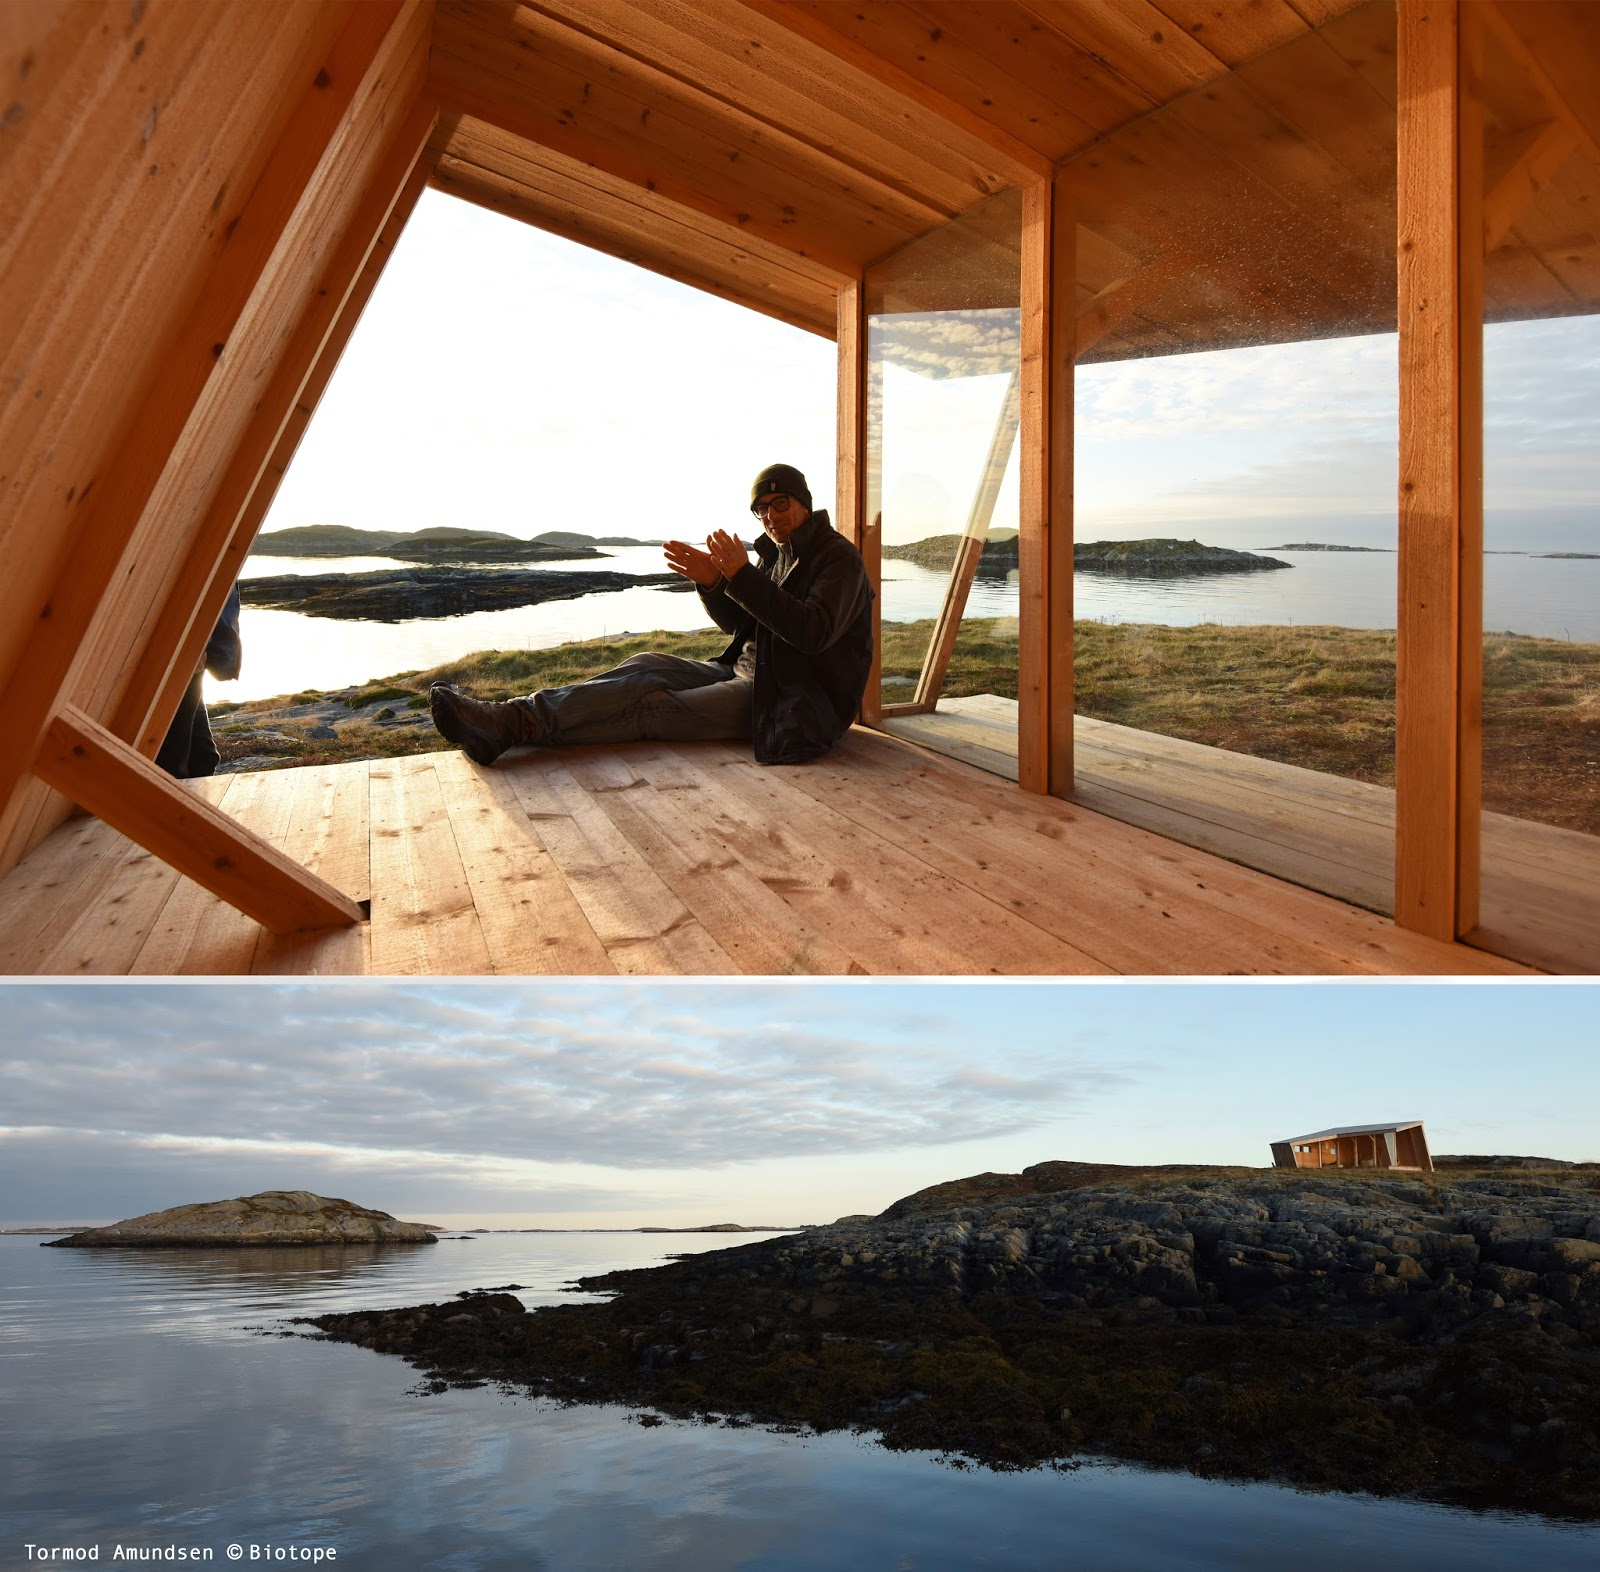 One of several Biotope designed nature shelters built as a result of the initial destination feasability study and destination development plan.